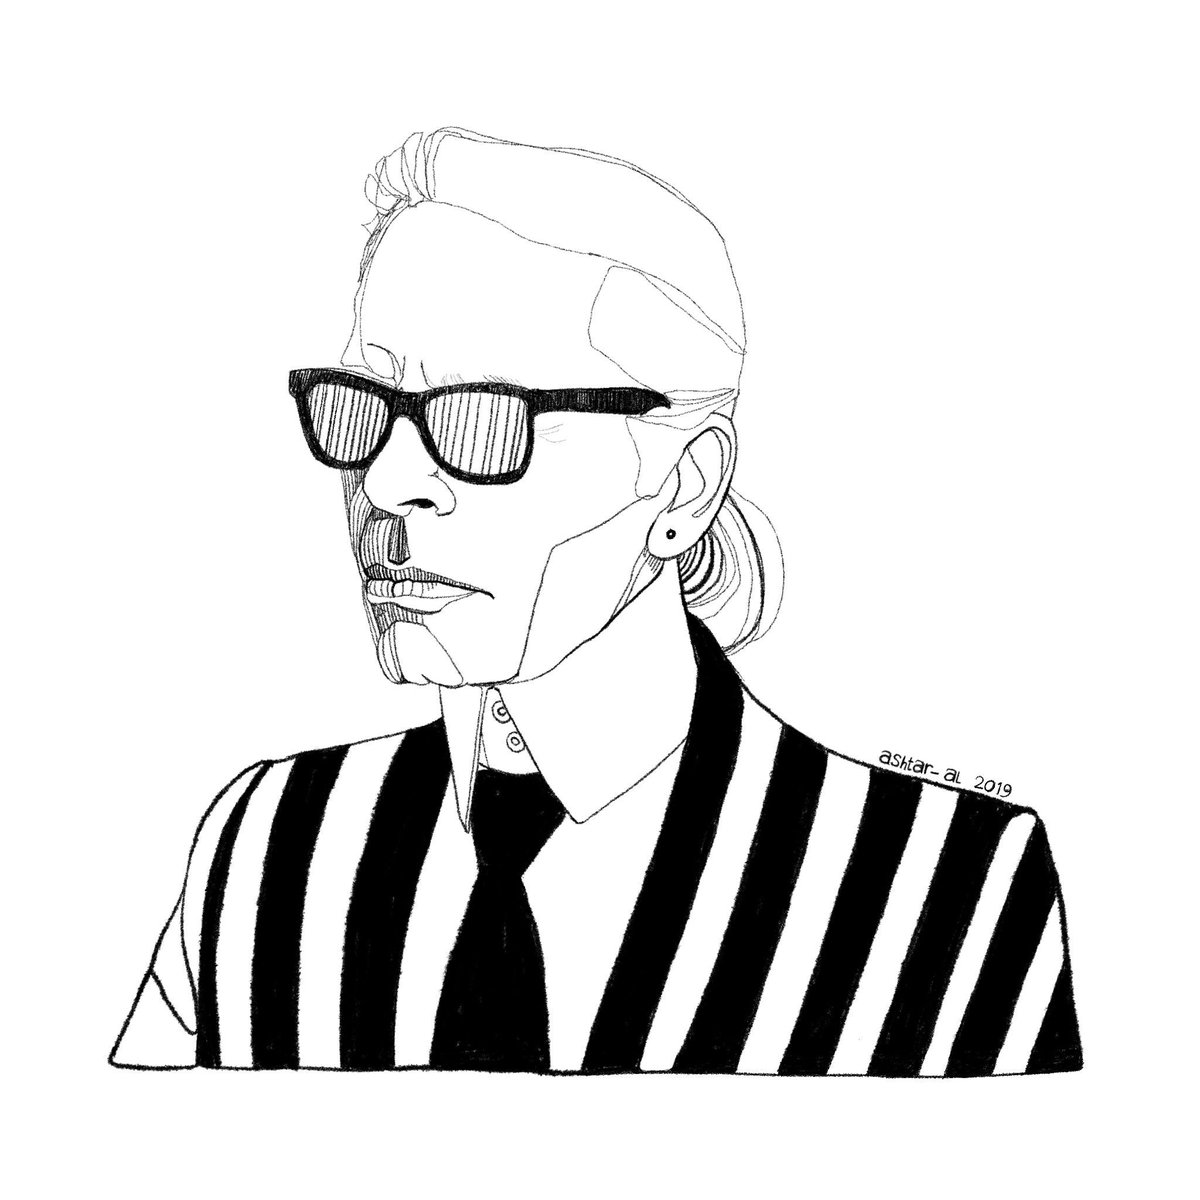 RT @HITRECORD: A true legend ???? RIP #karllargerfeld https://t.co/ZHn0D0mMoA   Illustration by @Ashtar_AlAhmad https://t.co/MHmQxRKkJ8